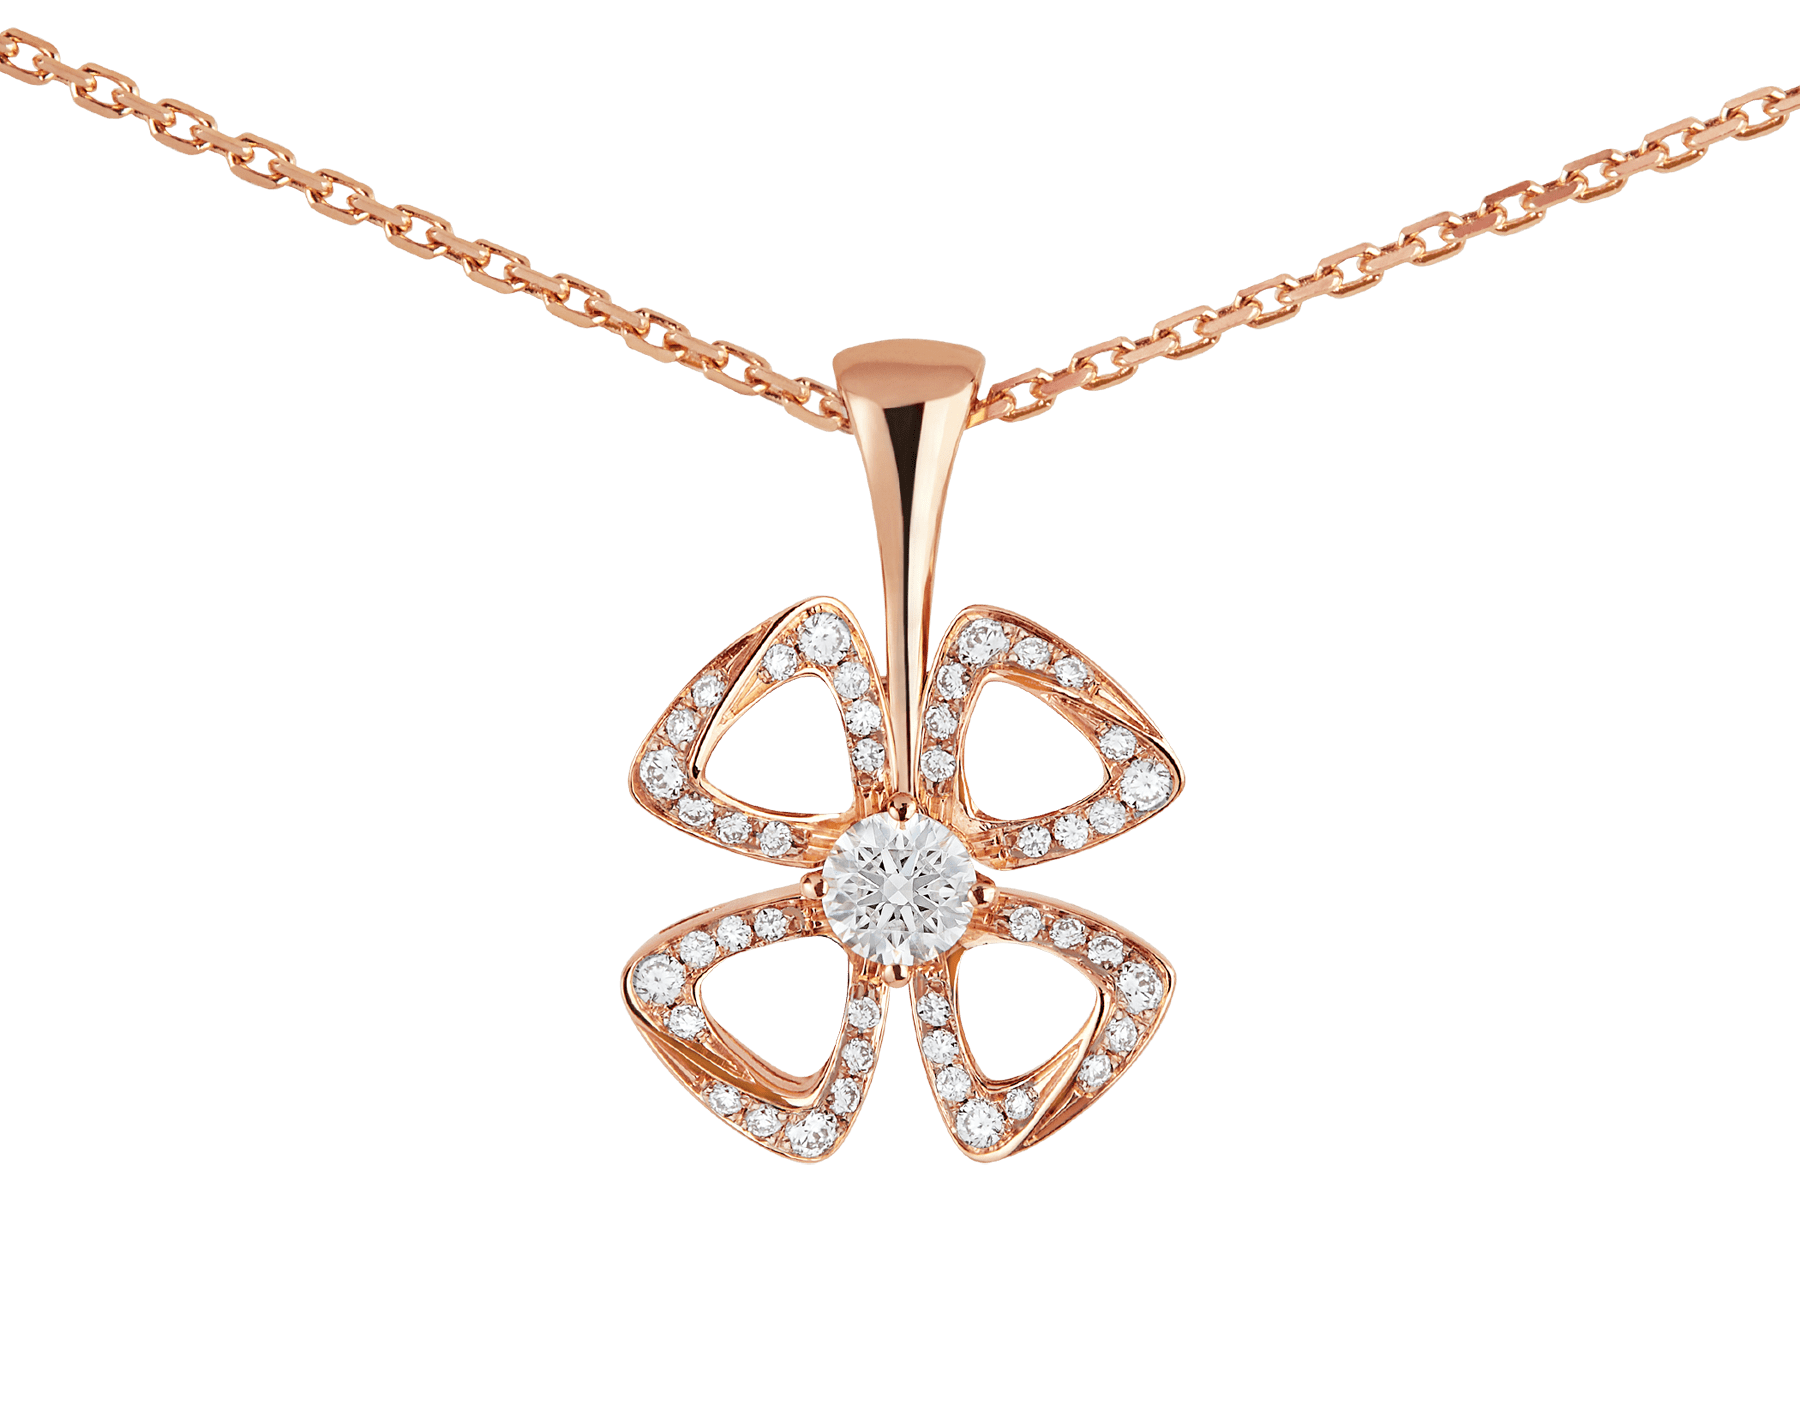 Fiorever 18 kt rose gold necklace set with a central brilliant-cut diamond (0.10 ct) and pavé diamonds (0.06 ct) 358156 image 3